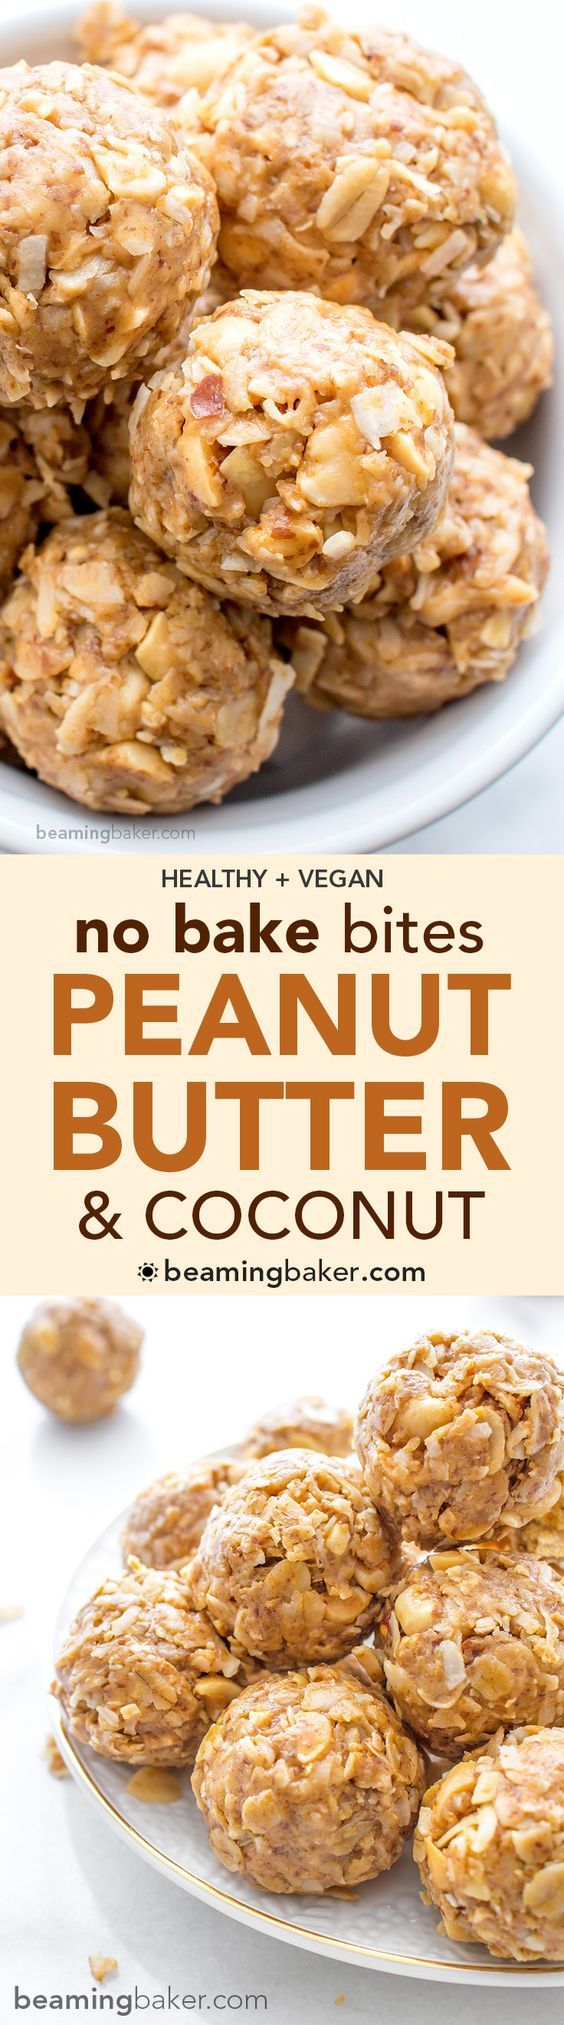 No Bake Peanut Butter Coconut Bites: delicious, easy to make, energy-boosting and super-filling. Made of just 6 simple ingredients, vegan, gluten free and healthy. ☀︎ BEAMINGBAKER.COM #vegan #gluten